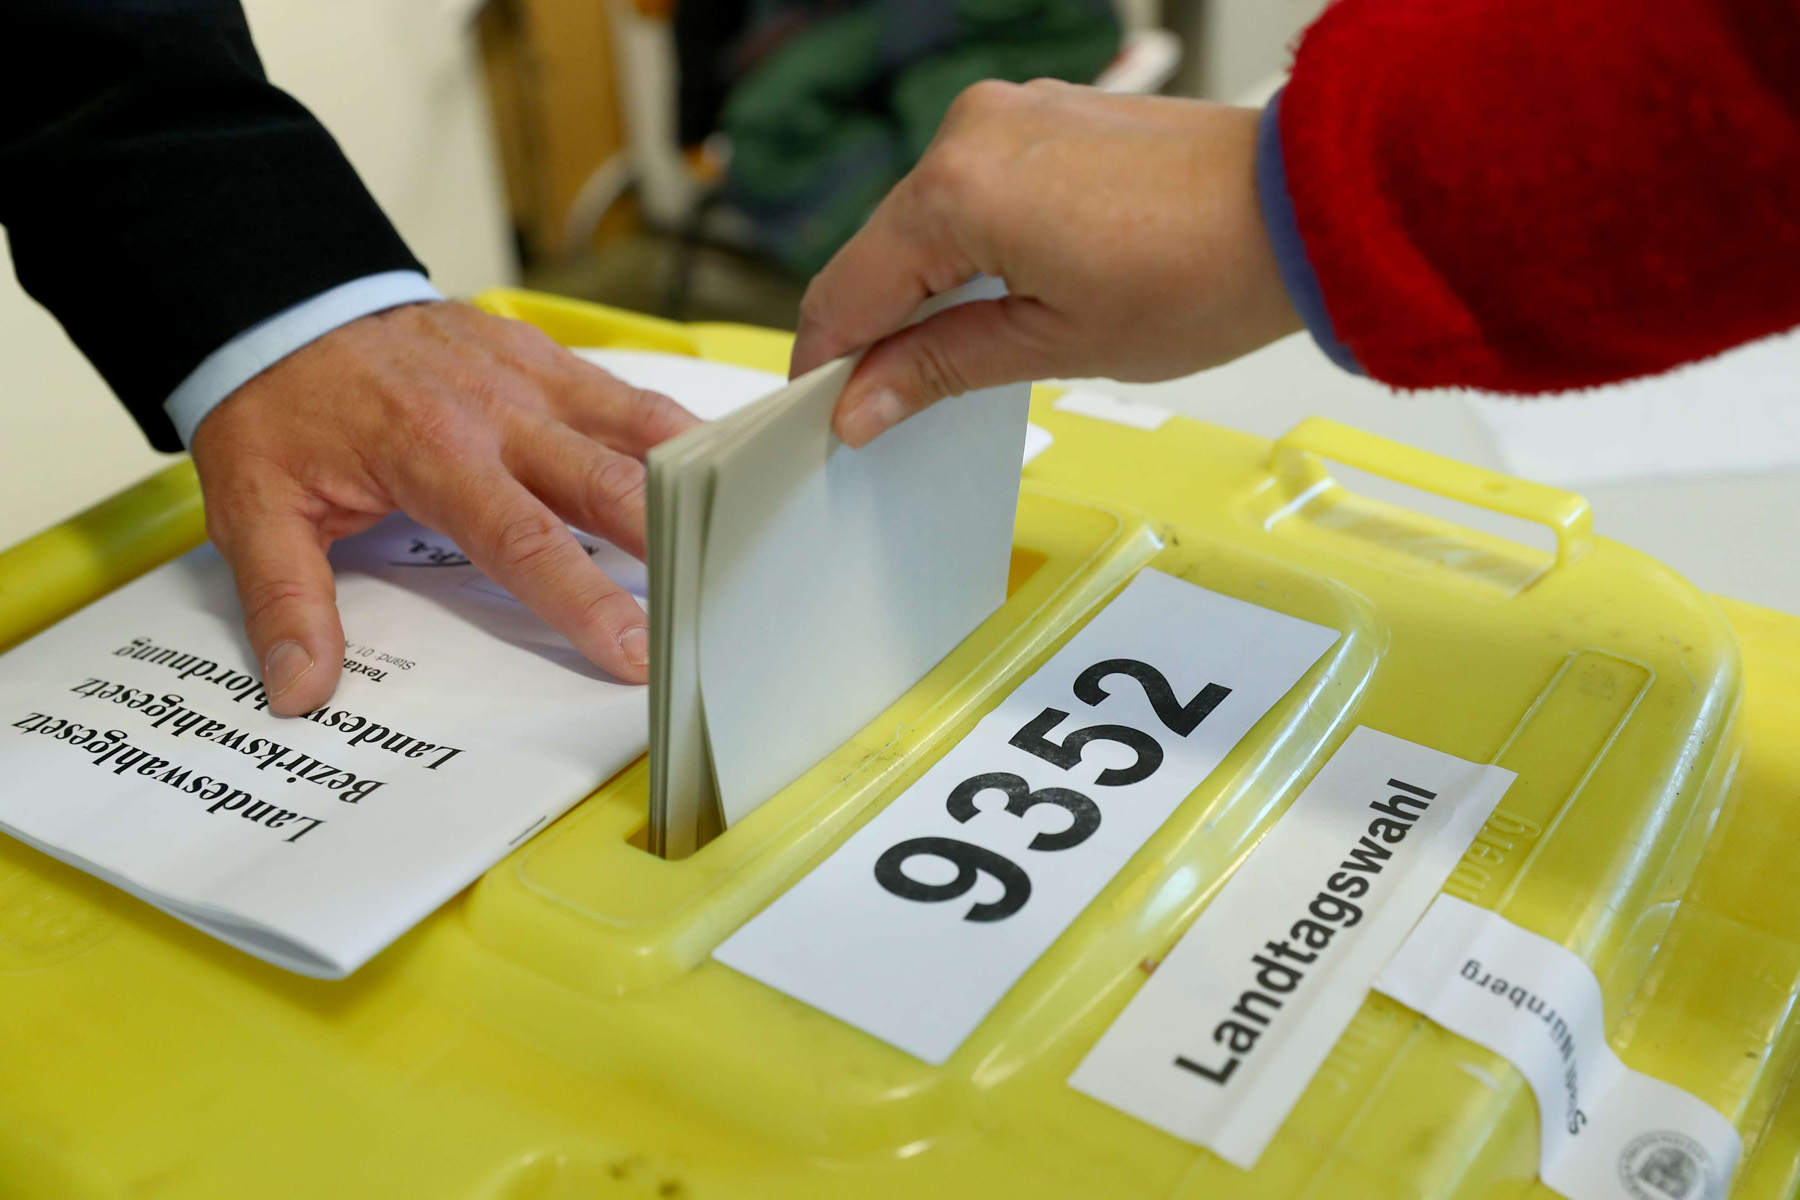 Not many dividends.  A voter casts her vote inside a ballot box at a polling station during the Bavaria state election, on 14 October.  (Daniel Karmann)